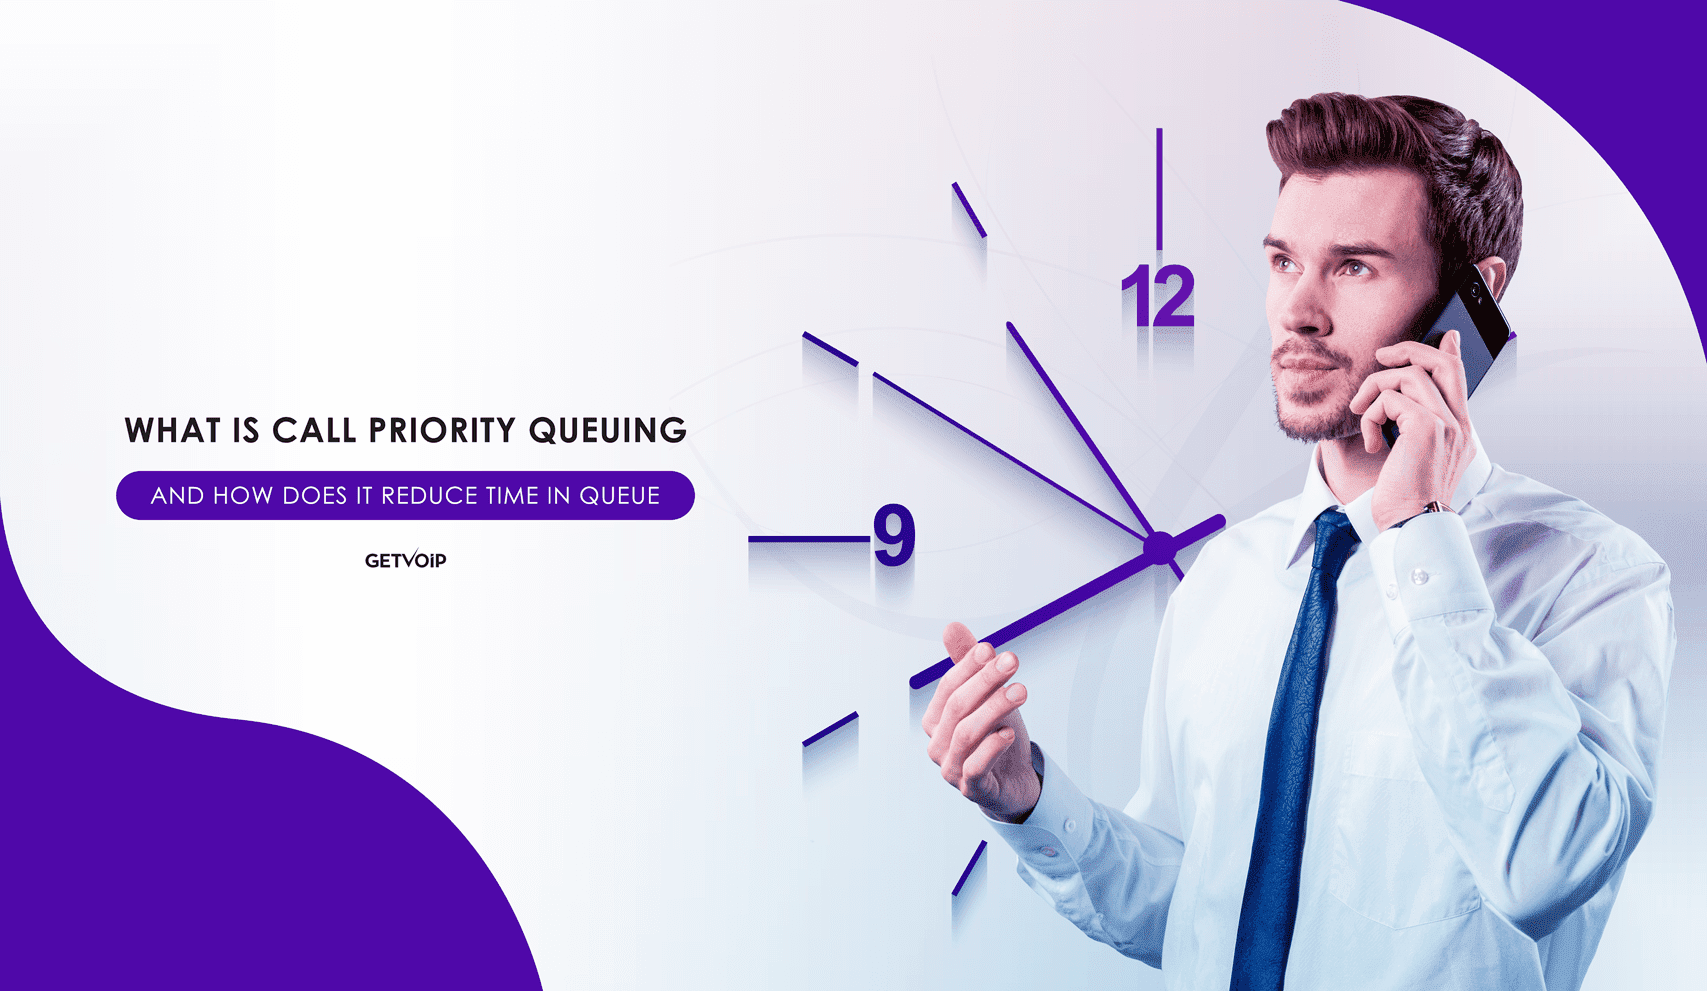 What is Call Priority Queuing and How Does it Reduce Time in Queue?